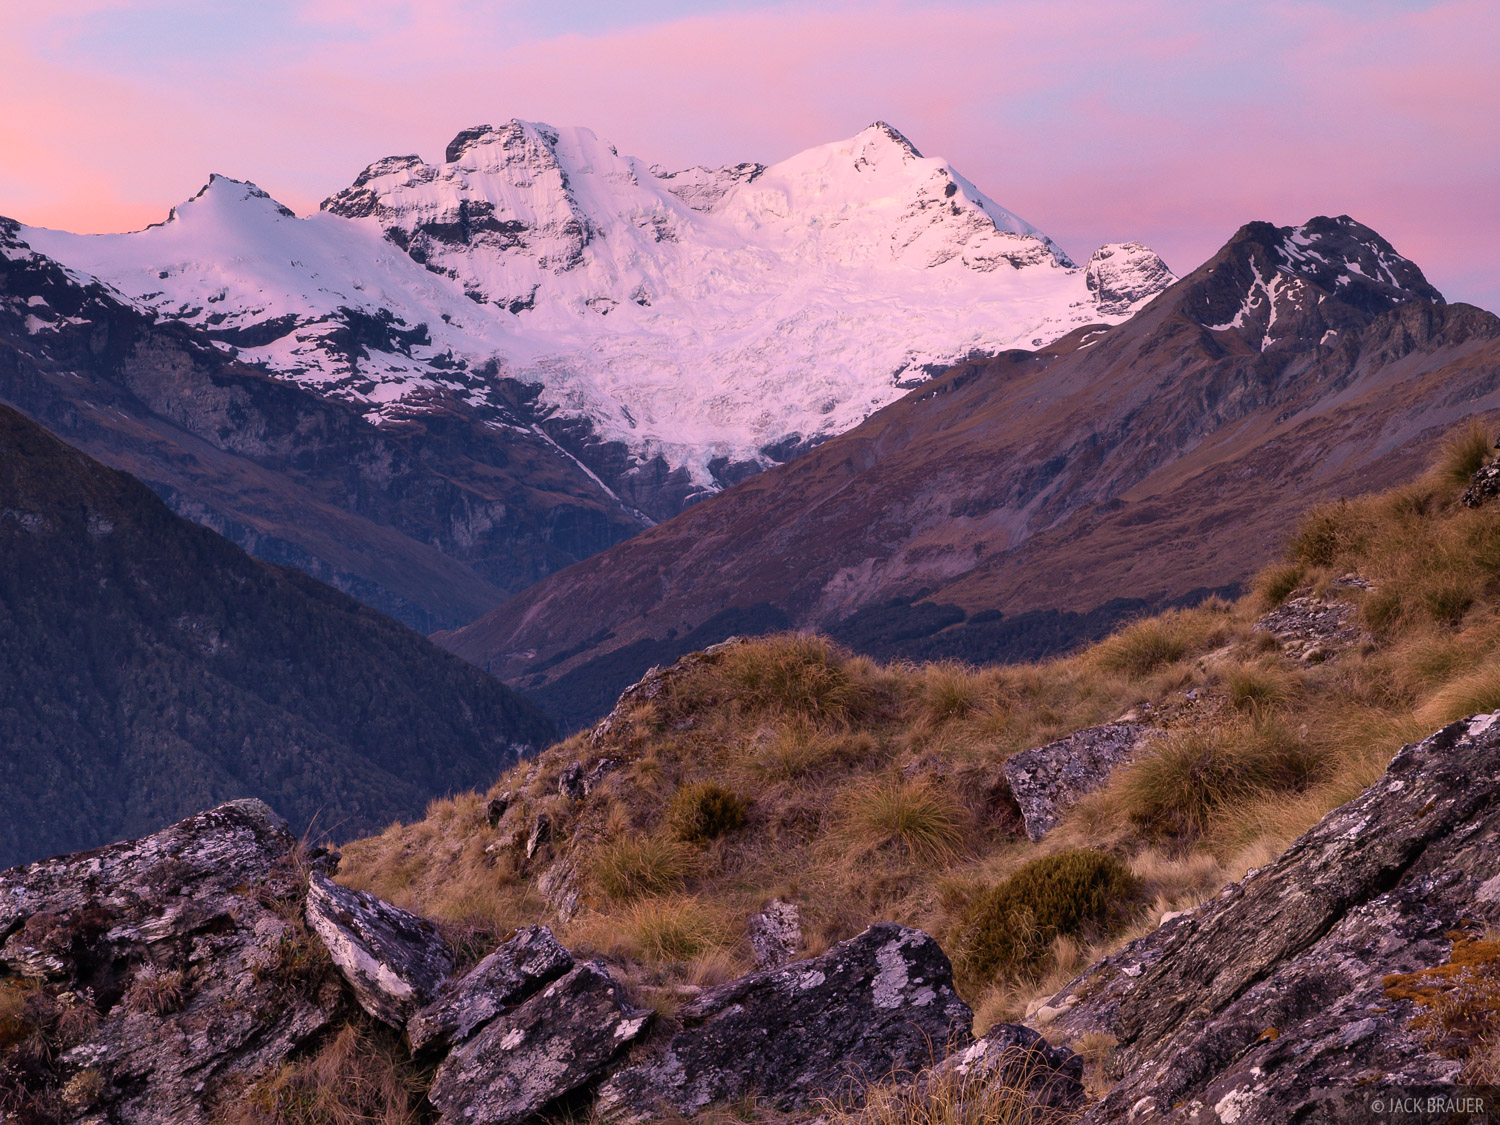 Mount Earnslaw, Mt. Aspiring, National Park, New Zealand, photo